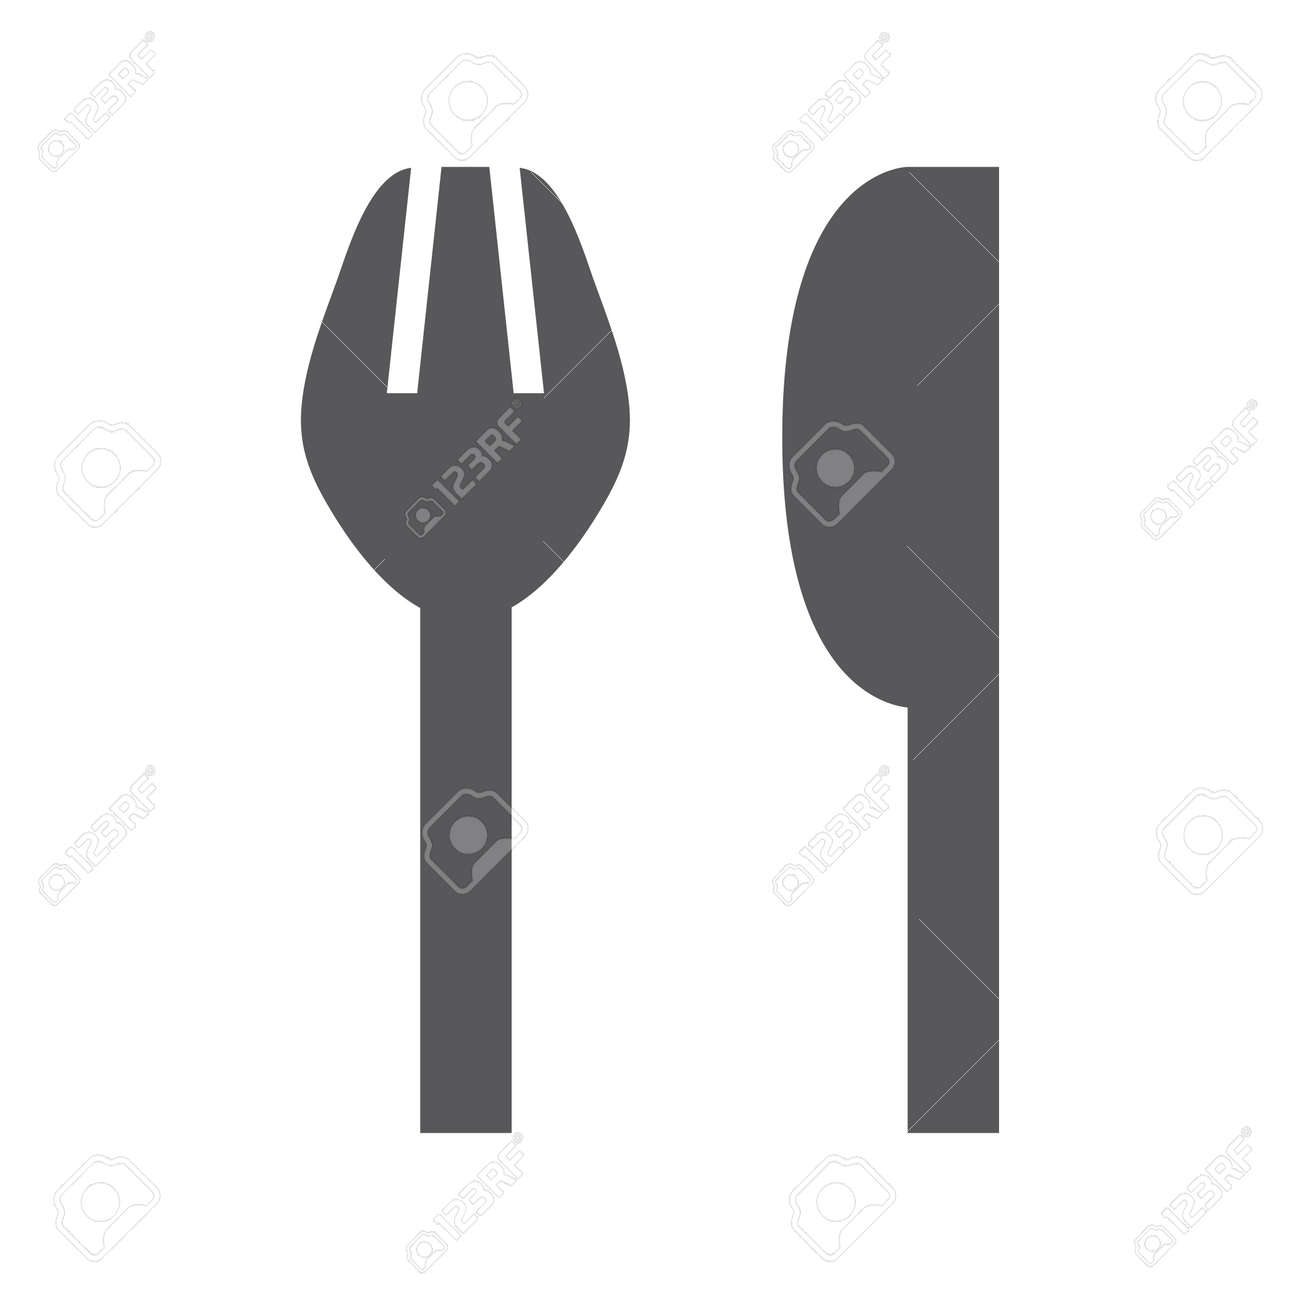 Simple fork and knife icon. Vector illustration Stock Vector - 92875670